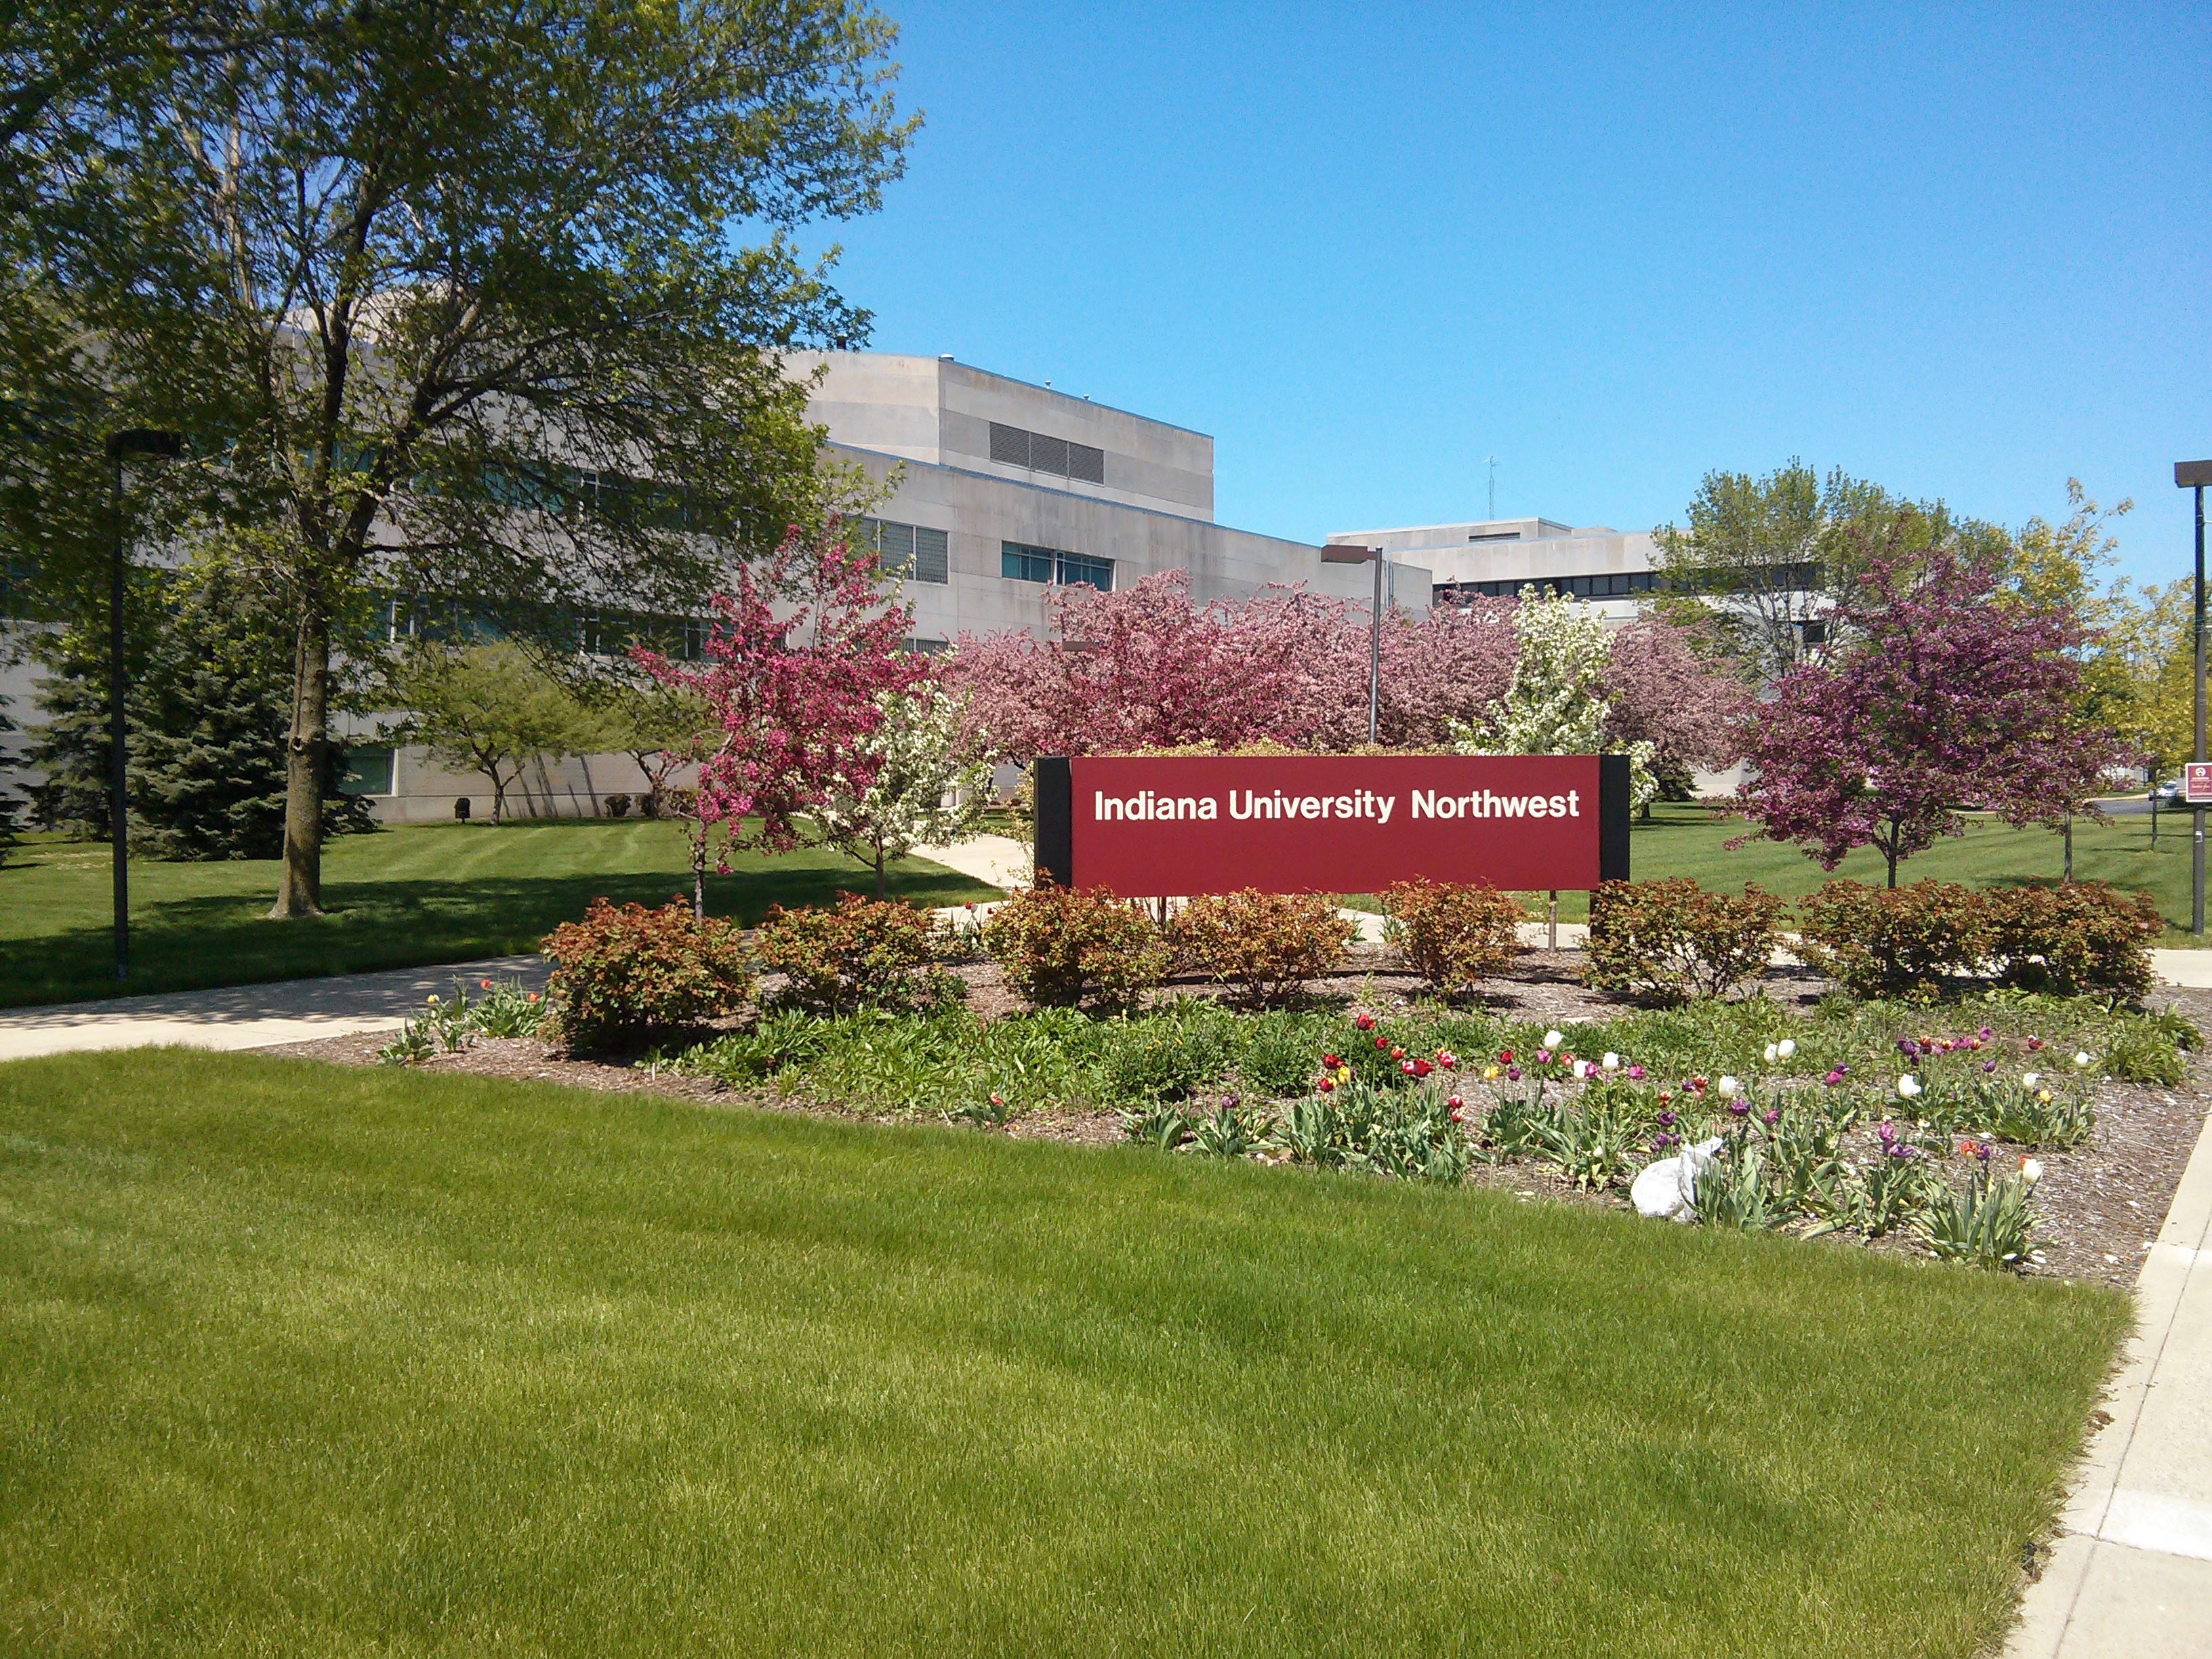 indiana-university-northwest-bachelor-of-science-in-bioinformatics